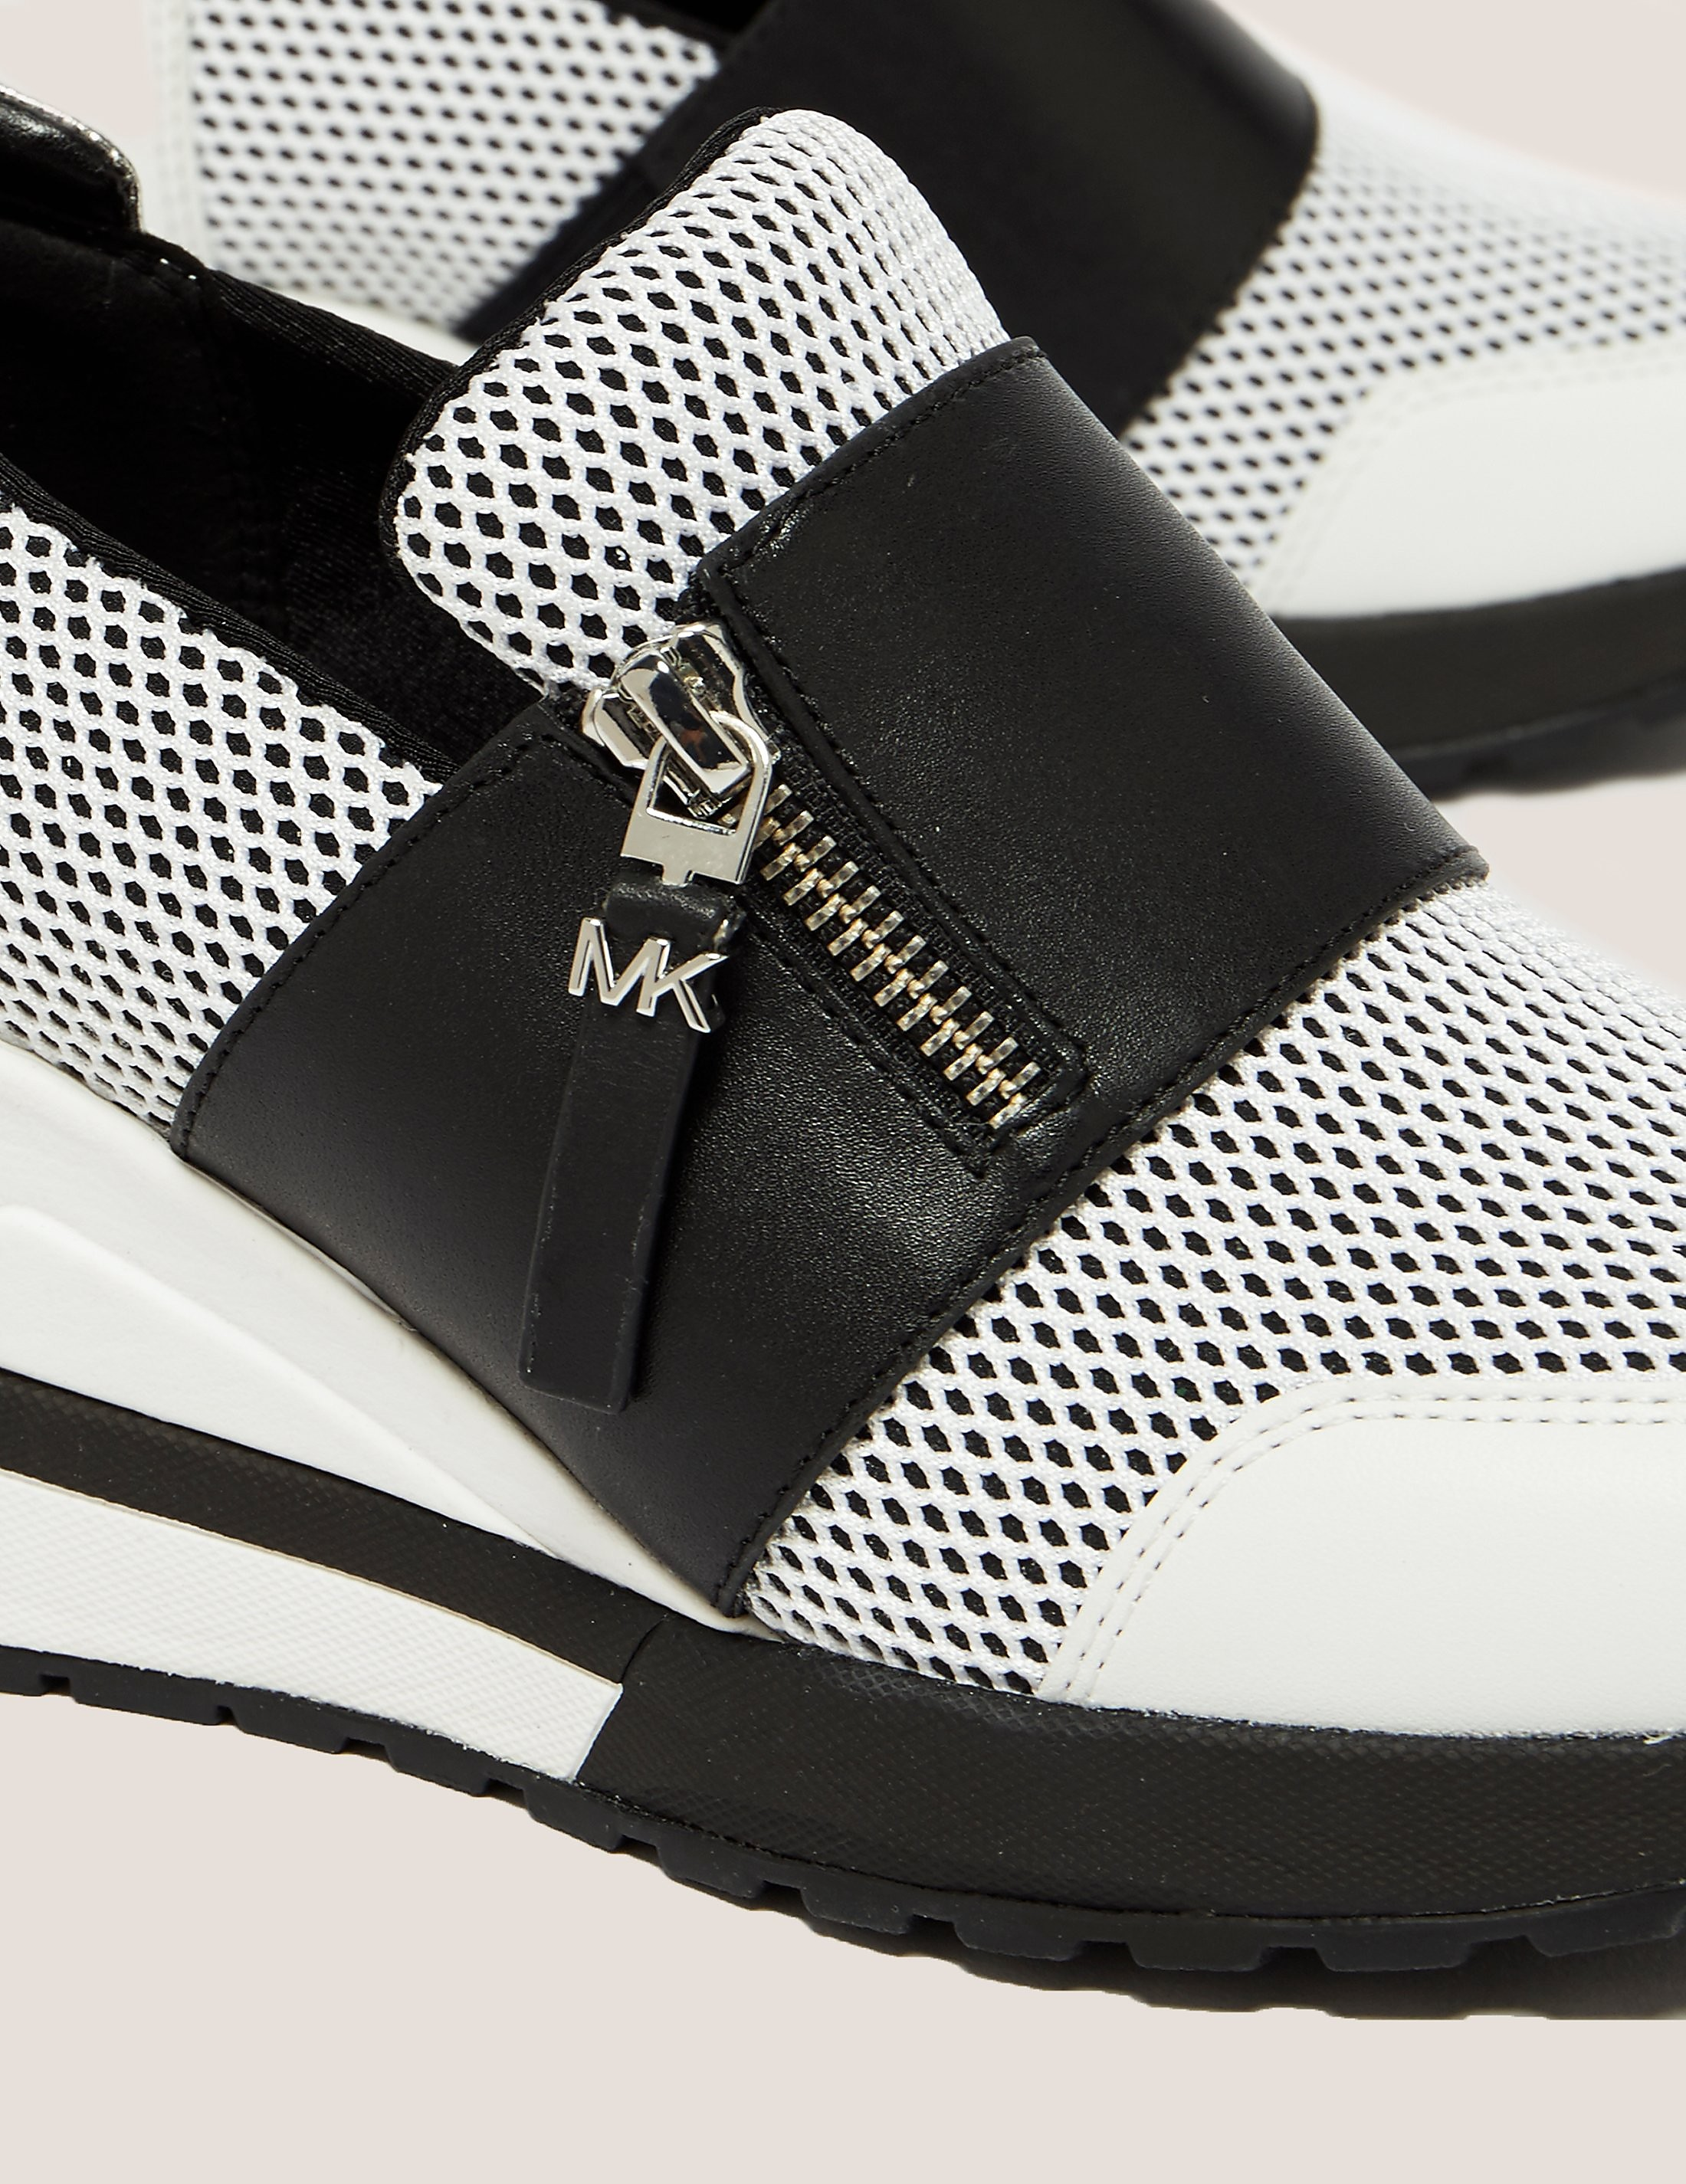 Michael Kors Chelsie Wedge Trainer